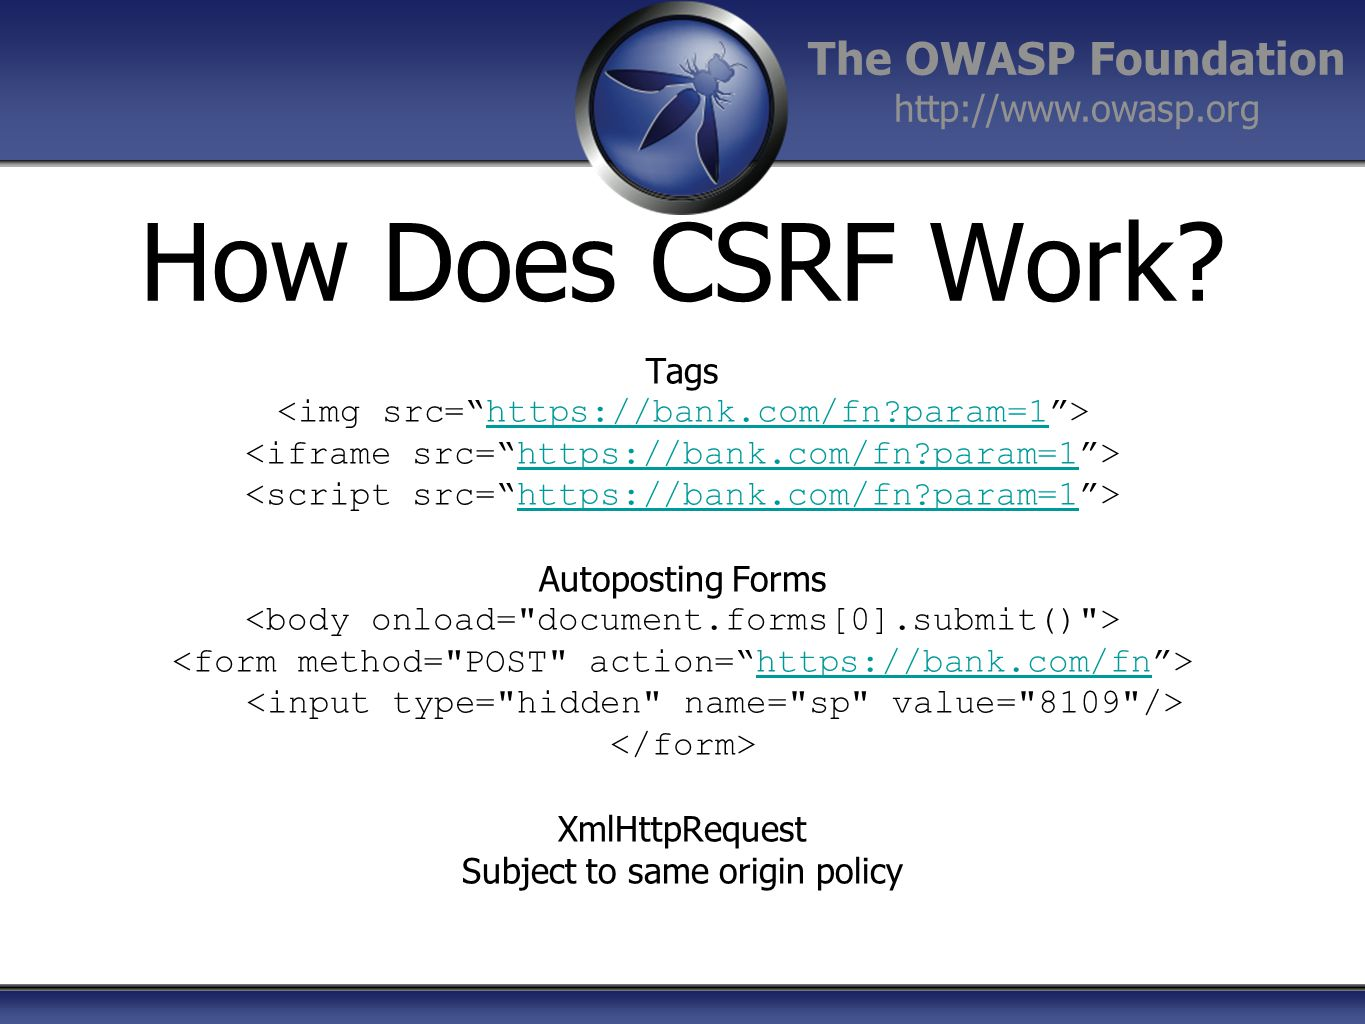 The OWASP Foundation http://www.owasp.org How Does CSRF Work? Tags https://bank.com/fn?param=1 https://bank.com/fn?param=1 https://bank.com/fn?param=1